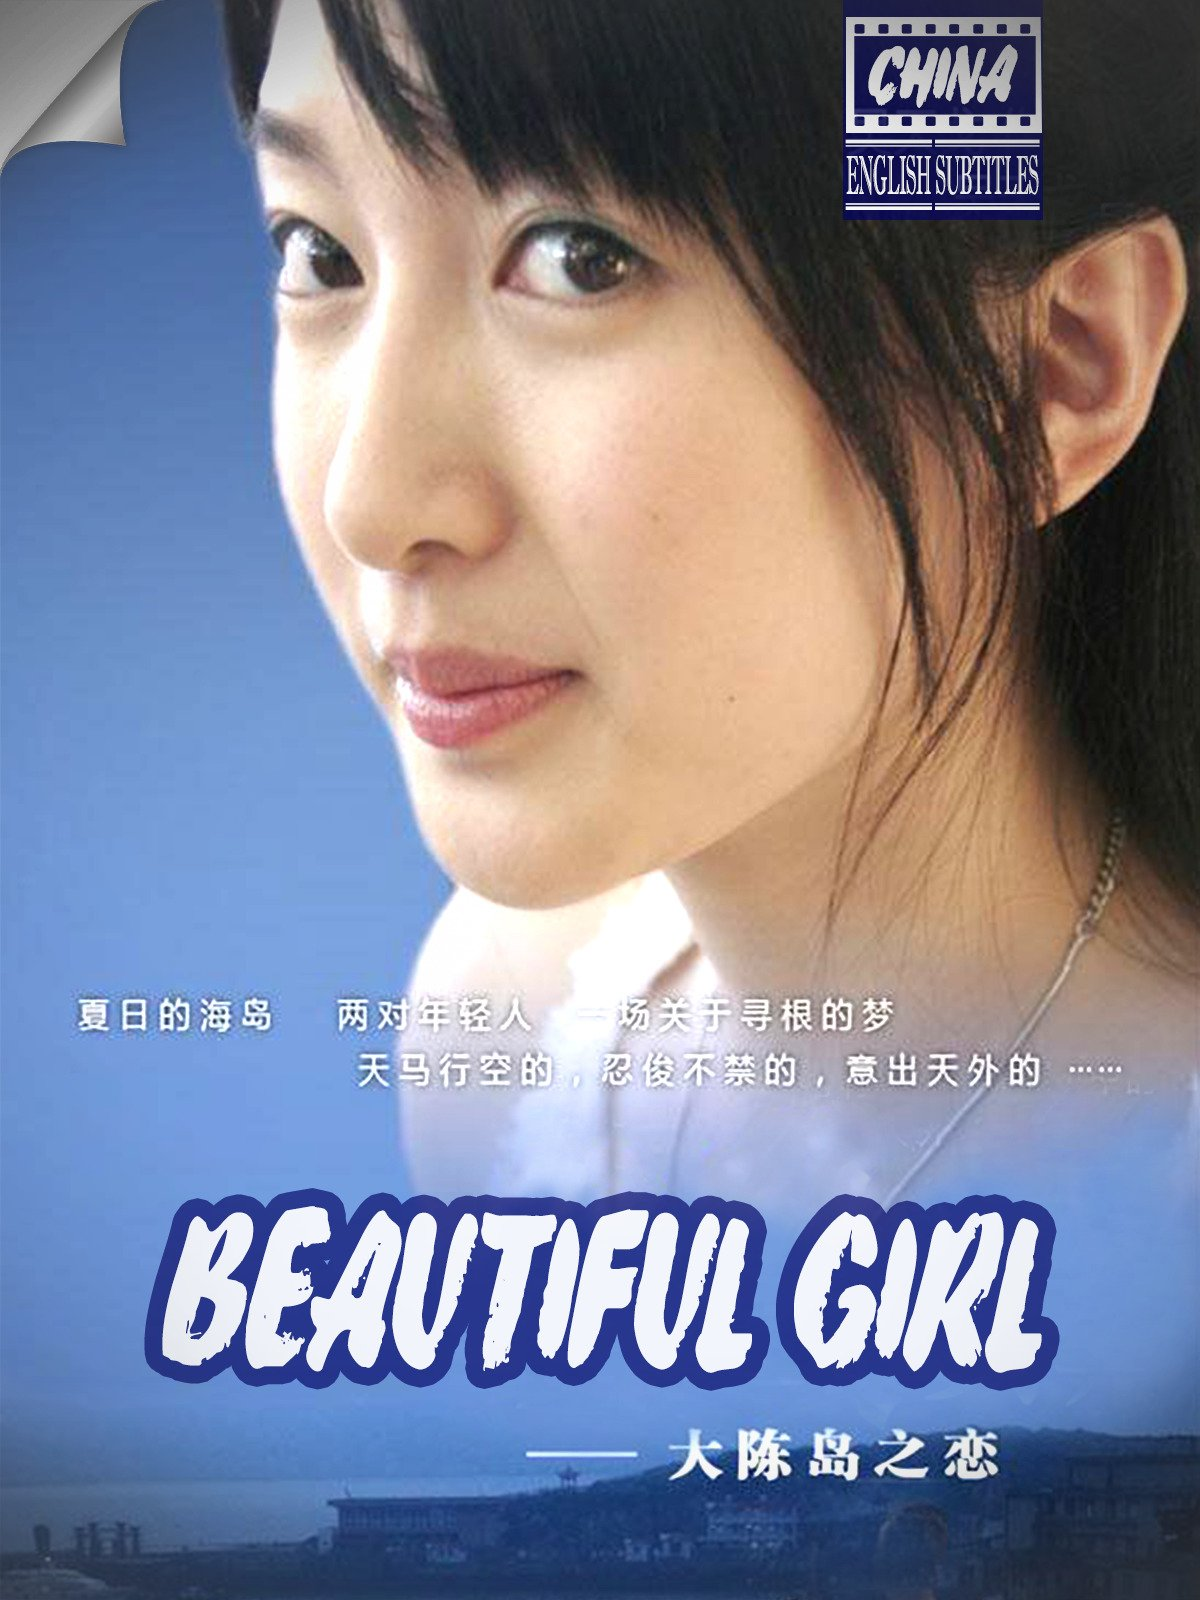 Beautiful Girl (english subtitles) China